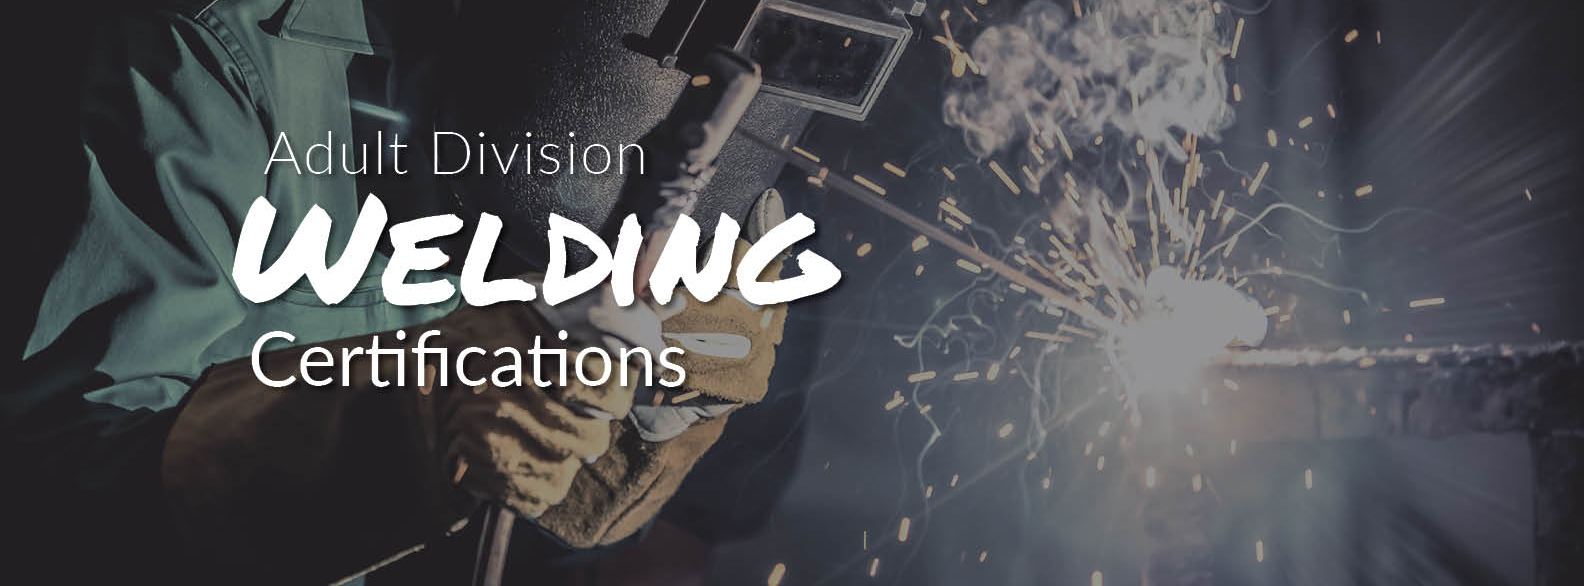 Adult Division Welding